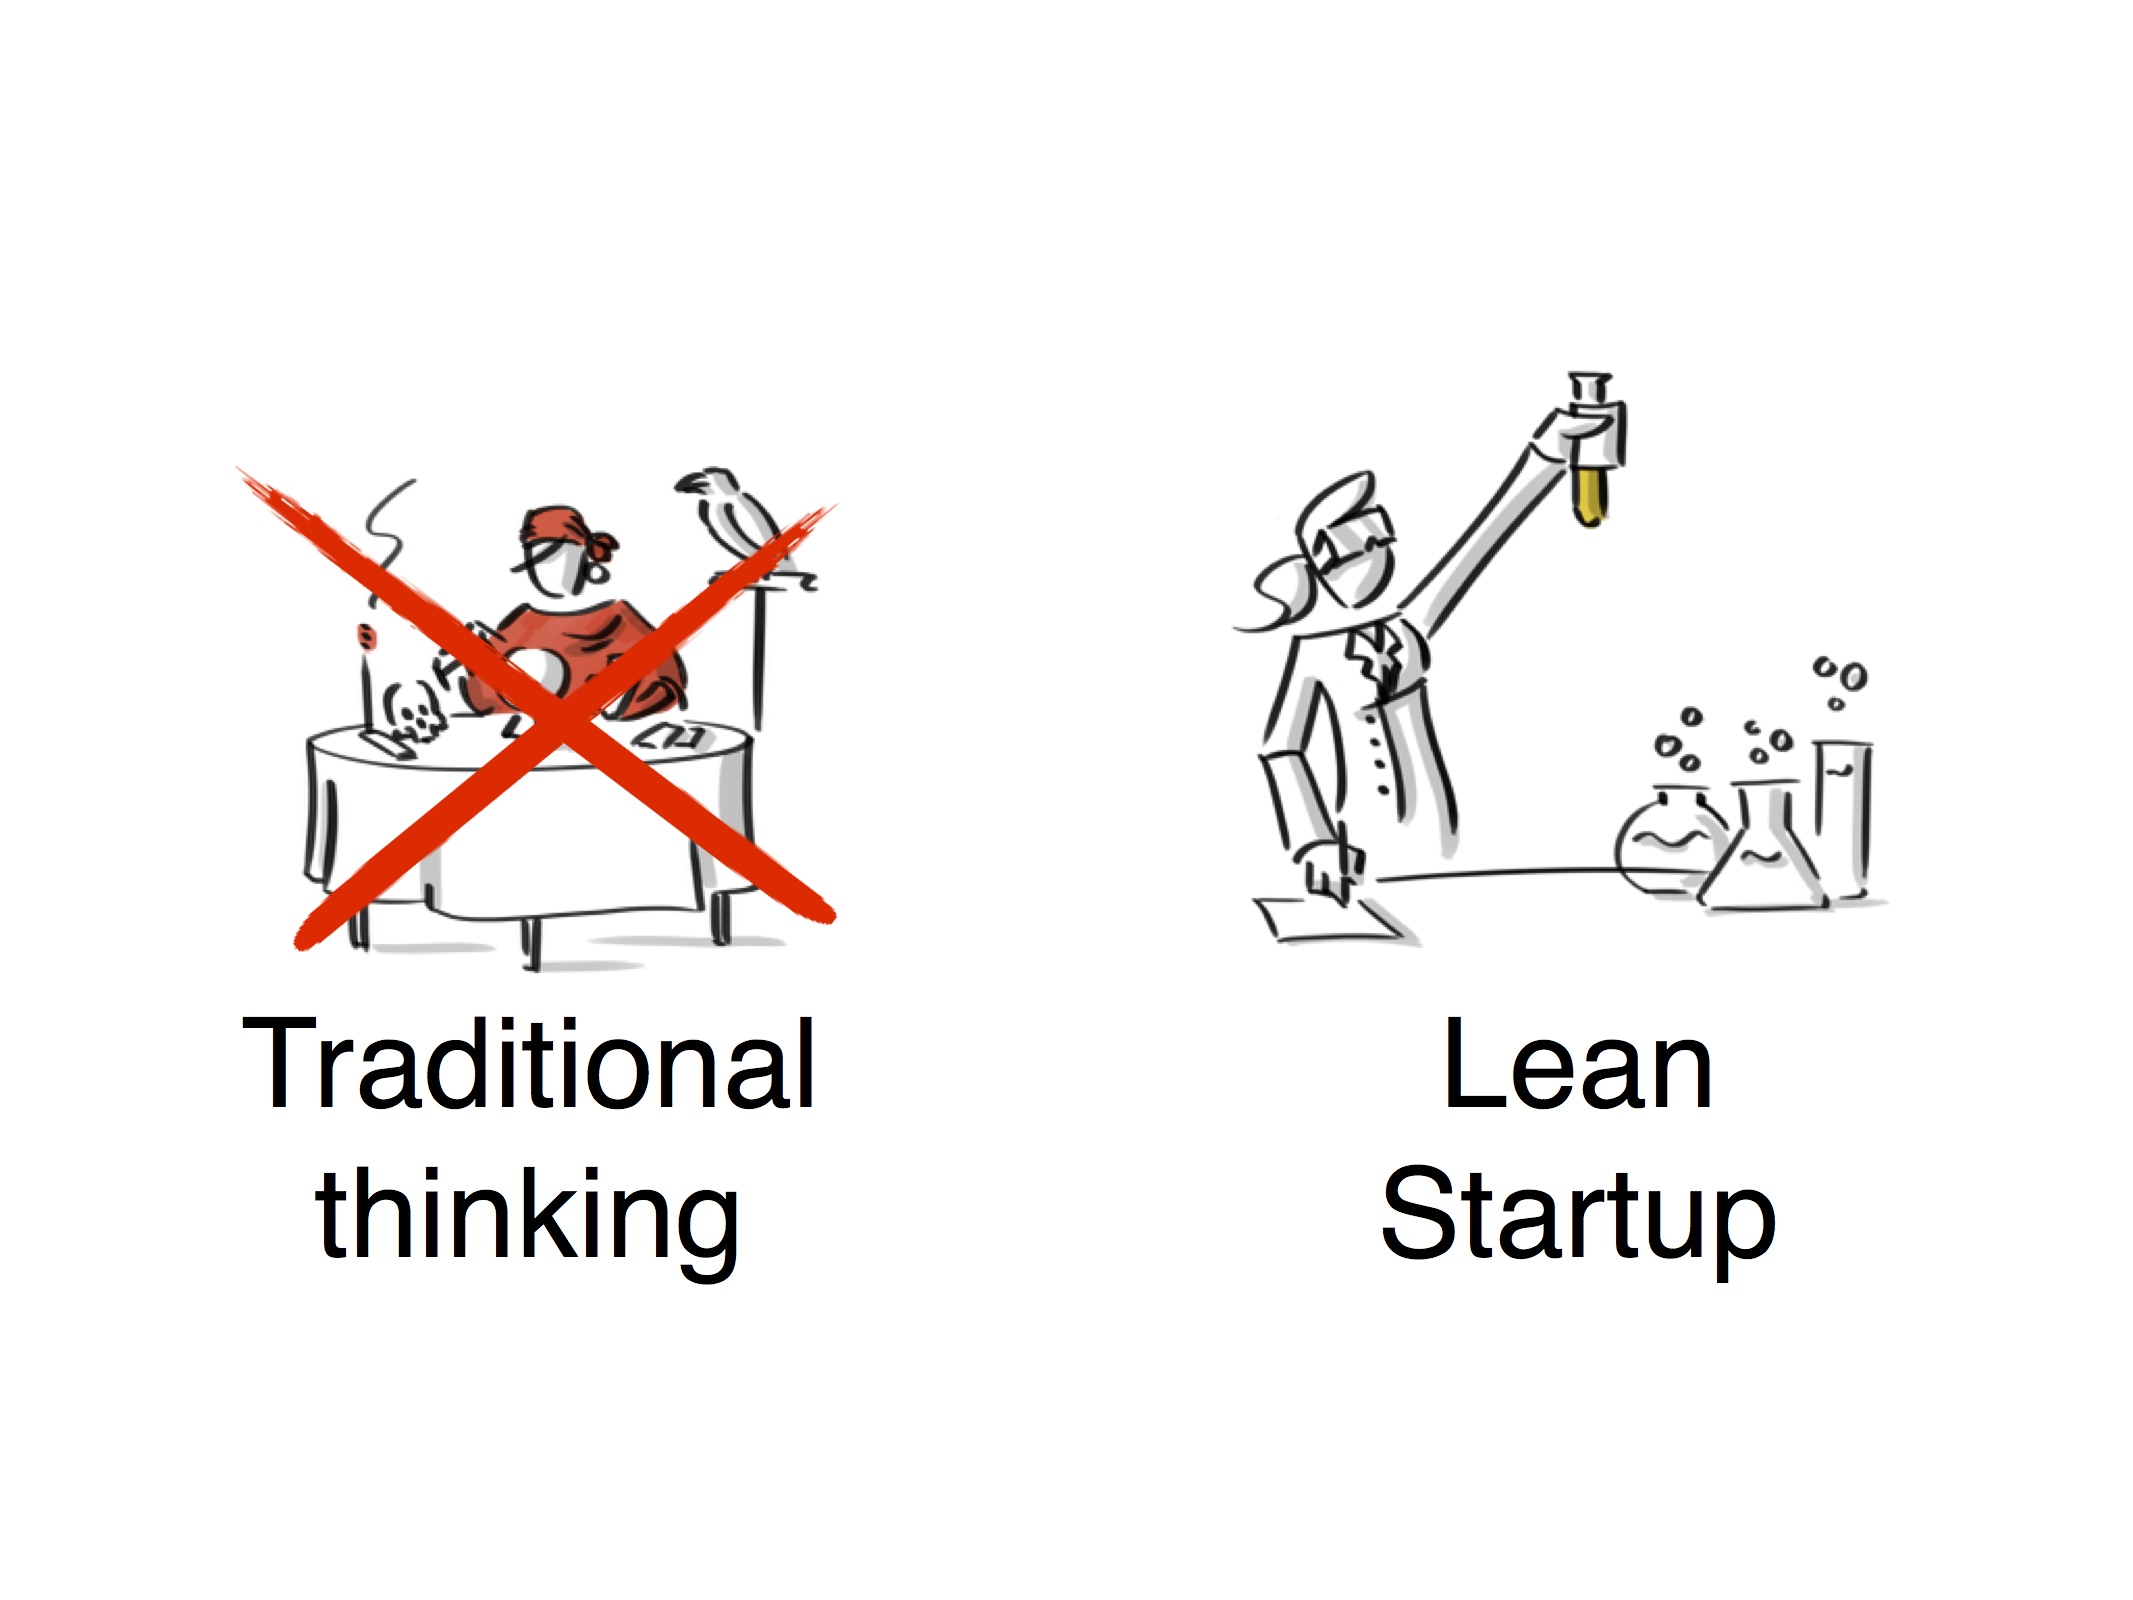 Lean Startup - Crystal ball vs scientific experiments